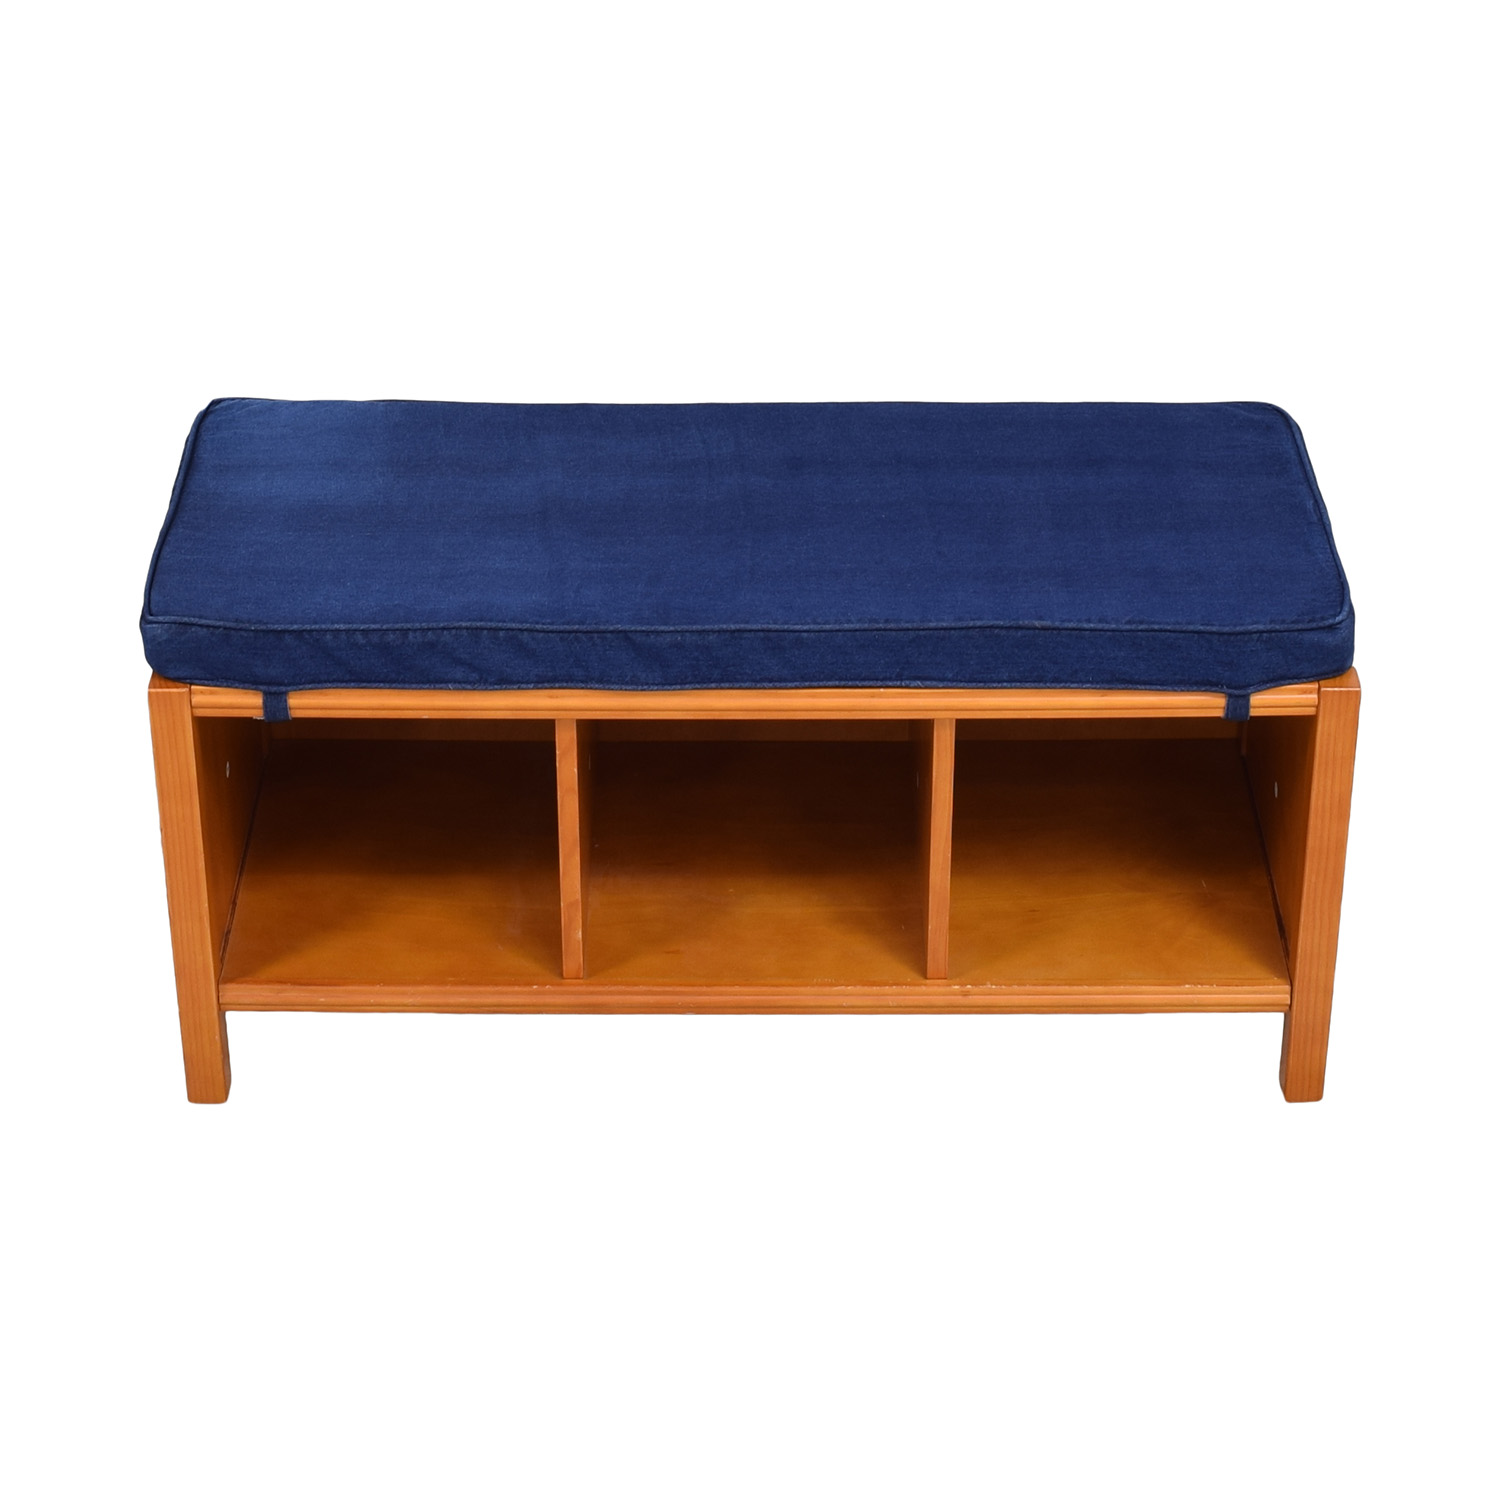 Land of Nod The Land of Nod Three Cube Bench with Cushion pa